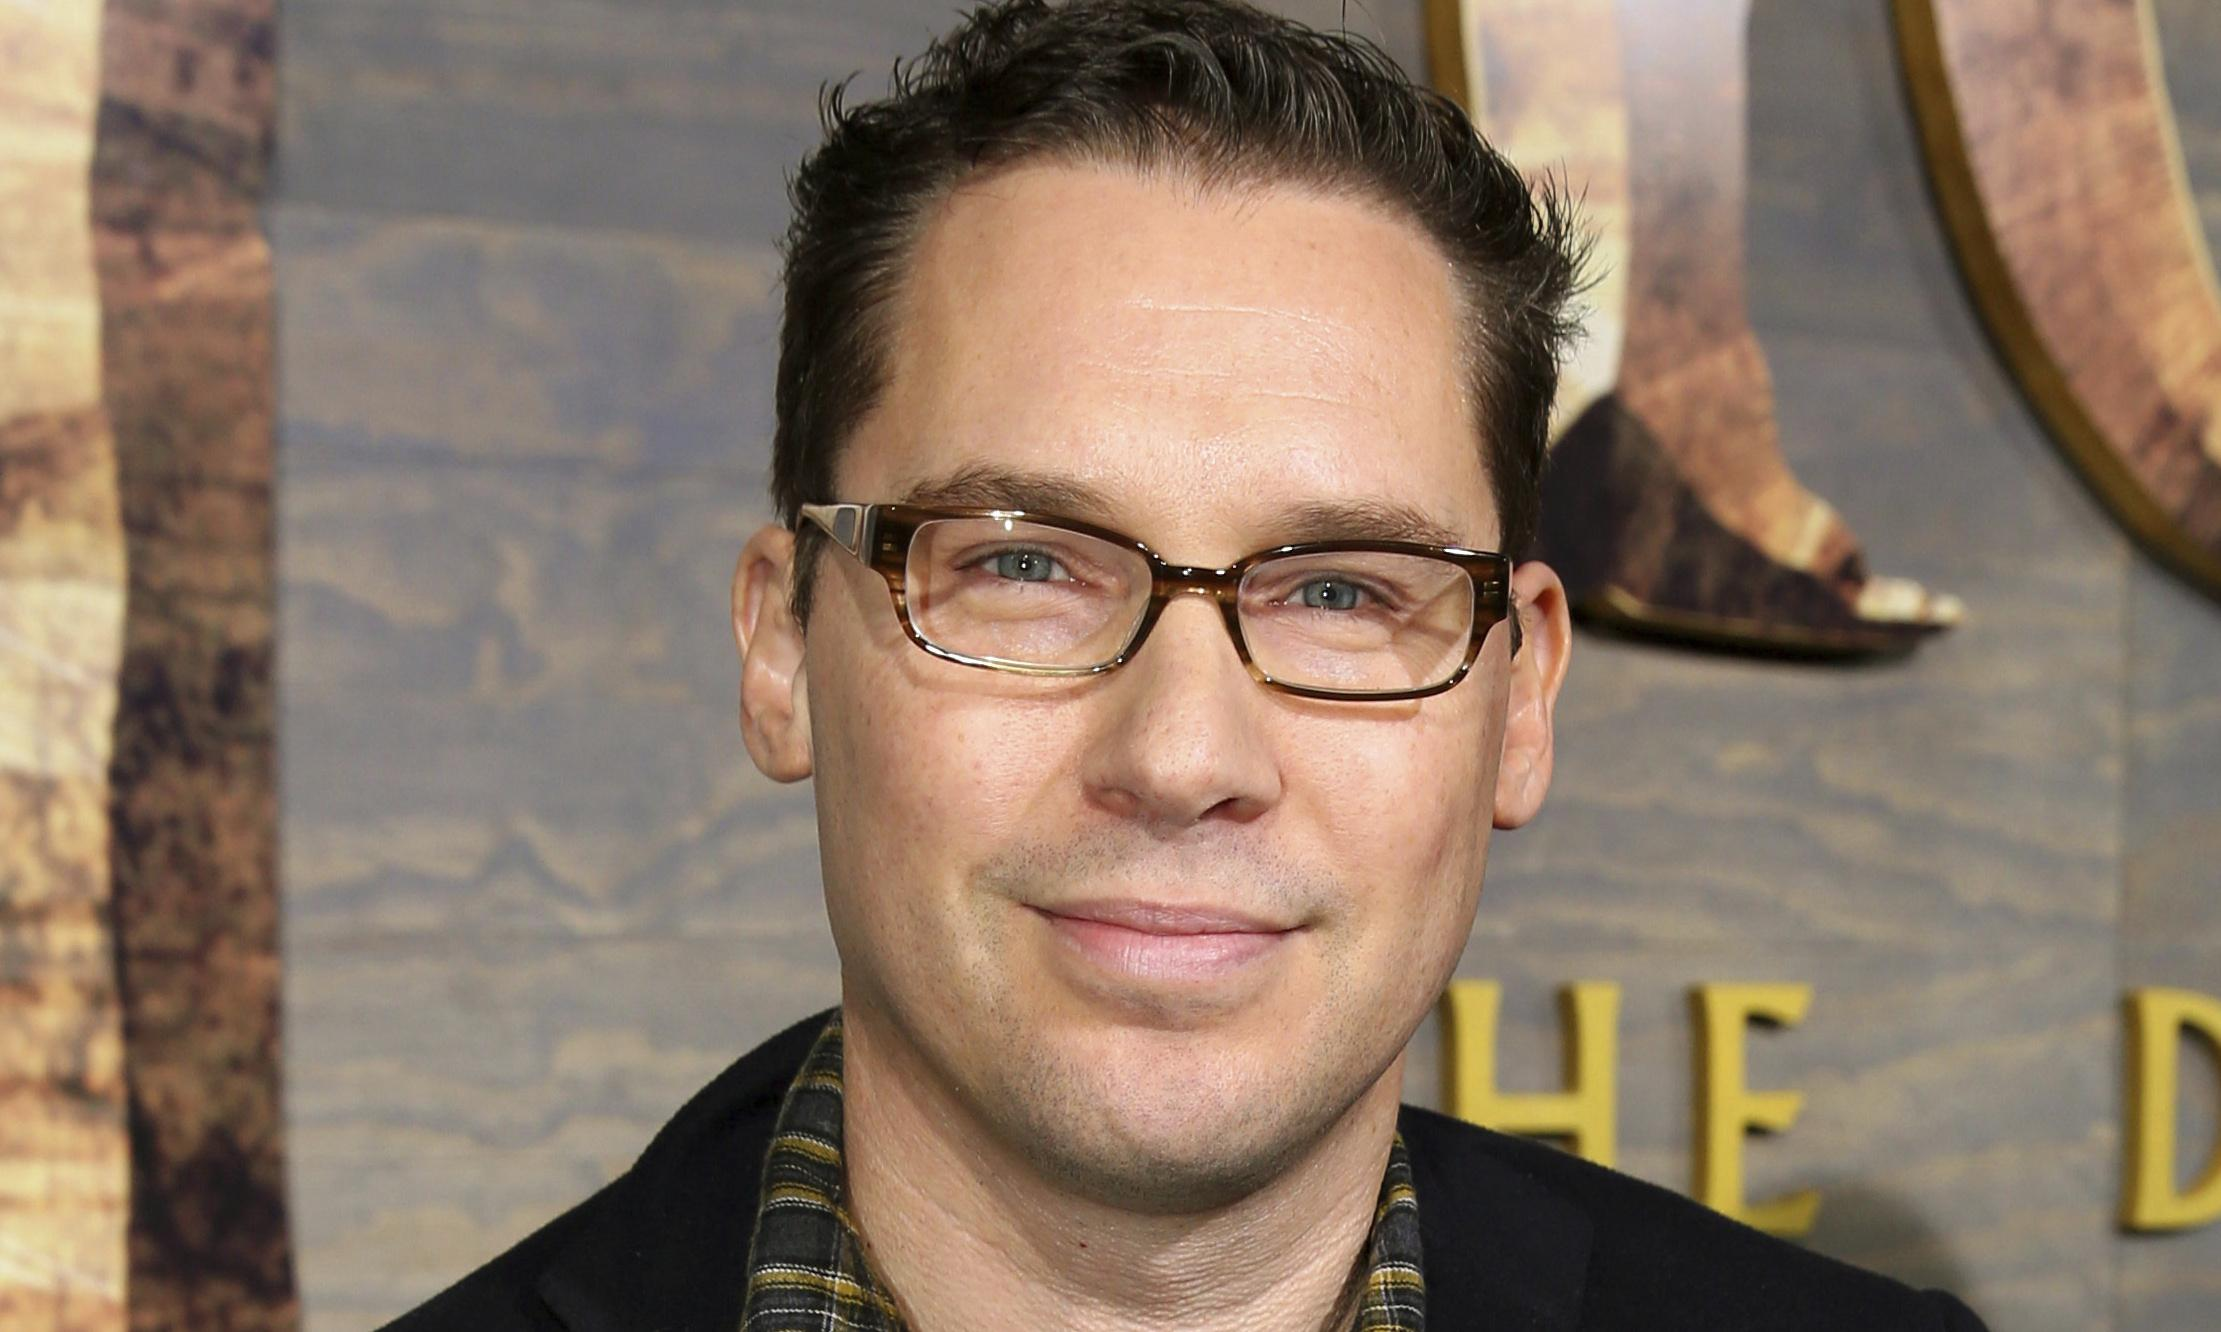 Bohemian Rhapsody director Bryan Singer says sexual misconduct claims are 'homophobic smear'